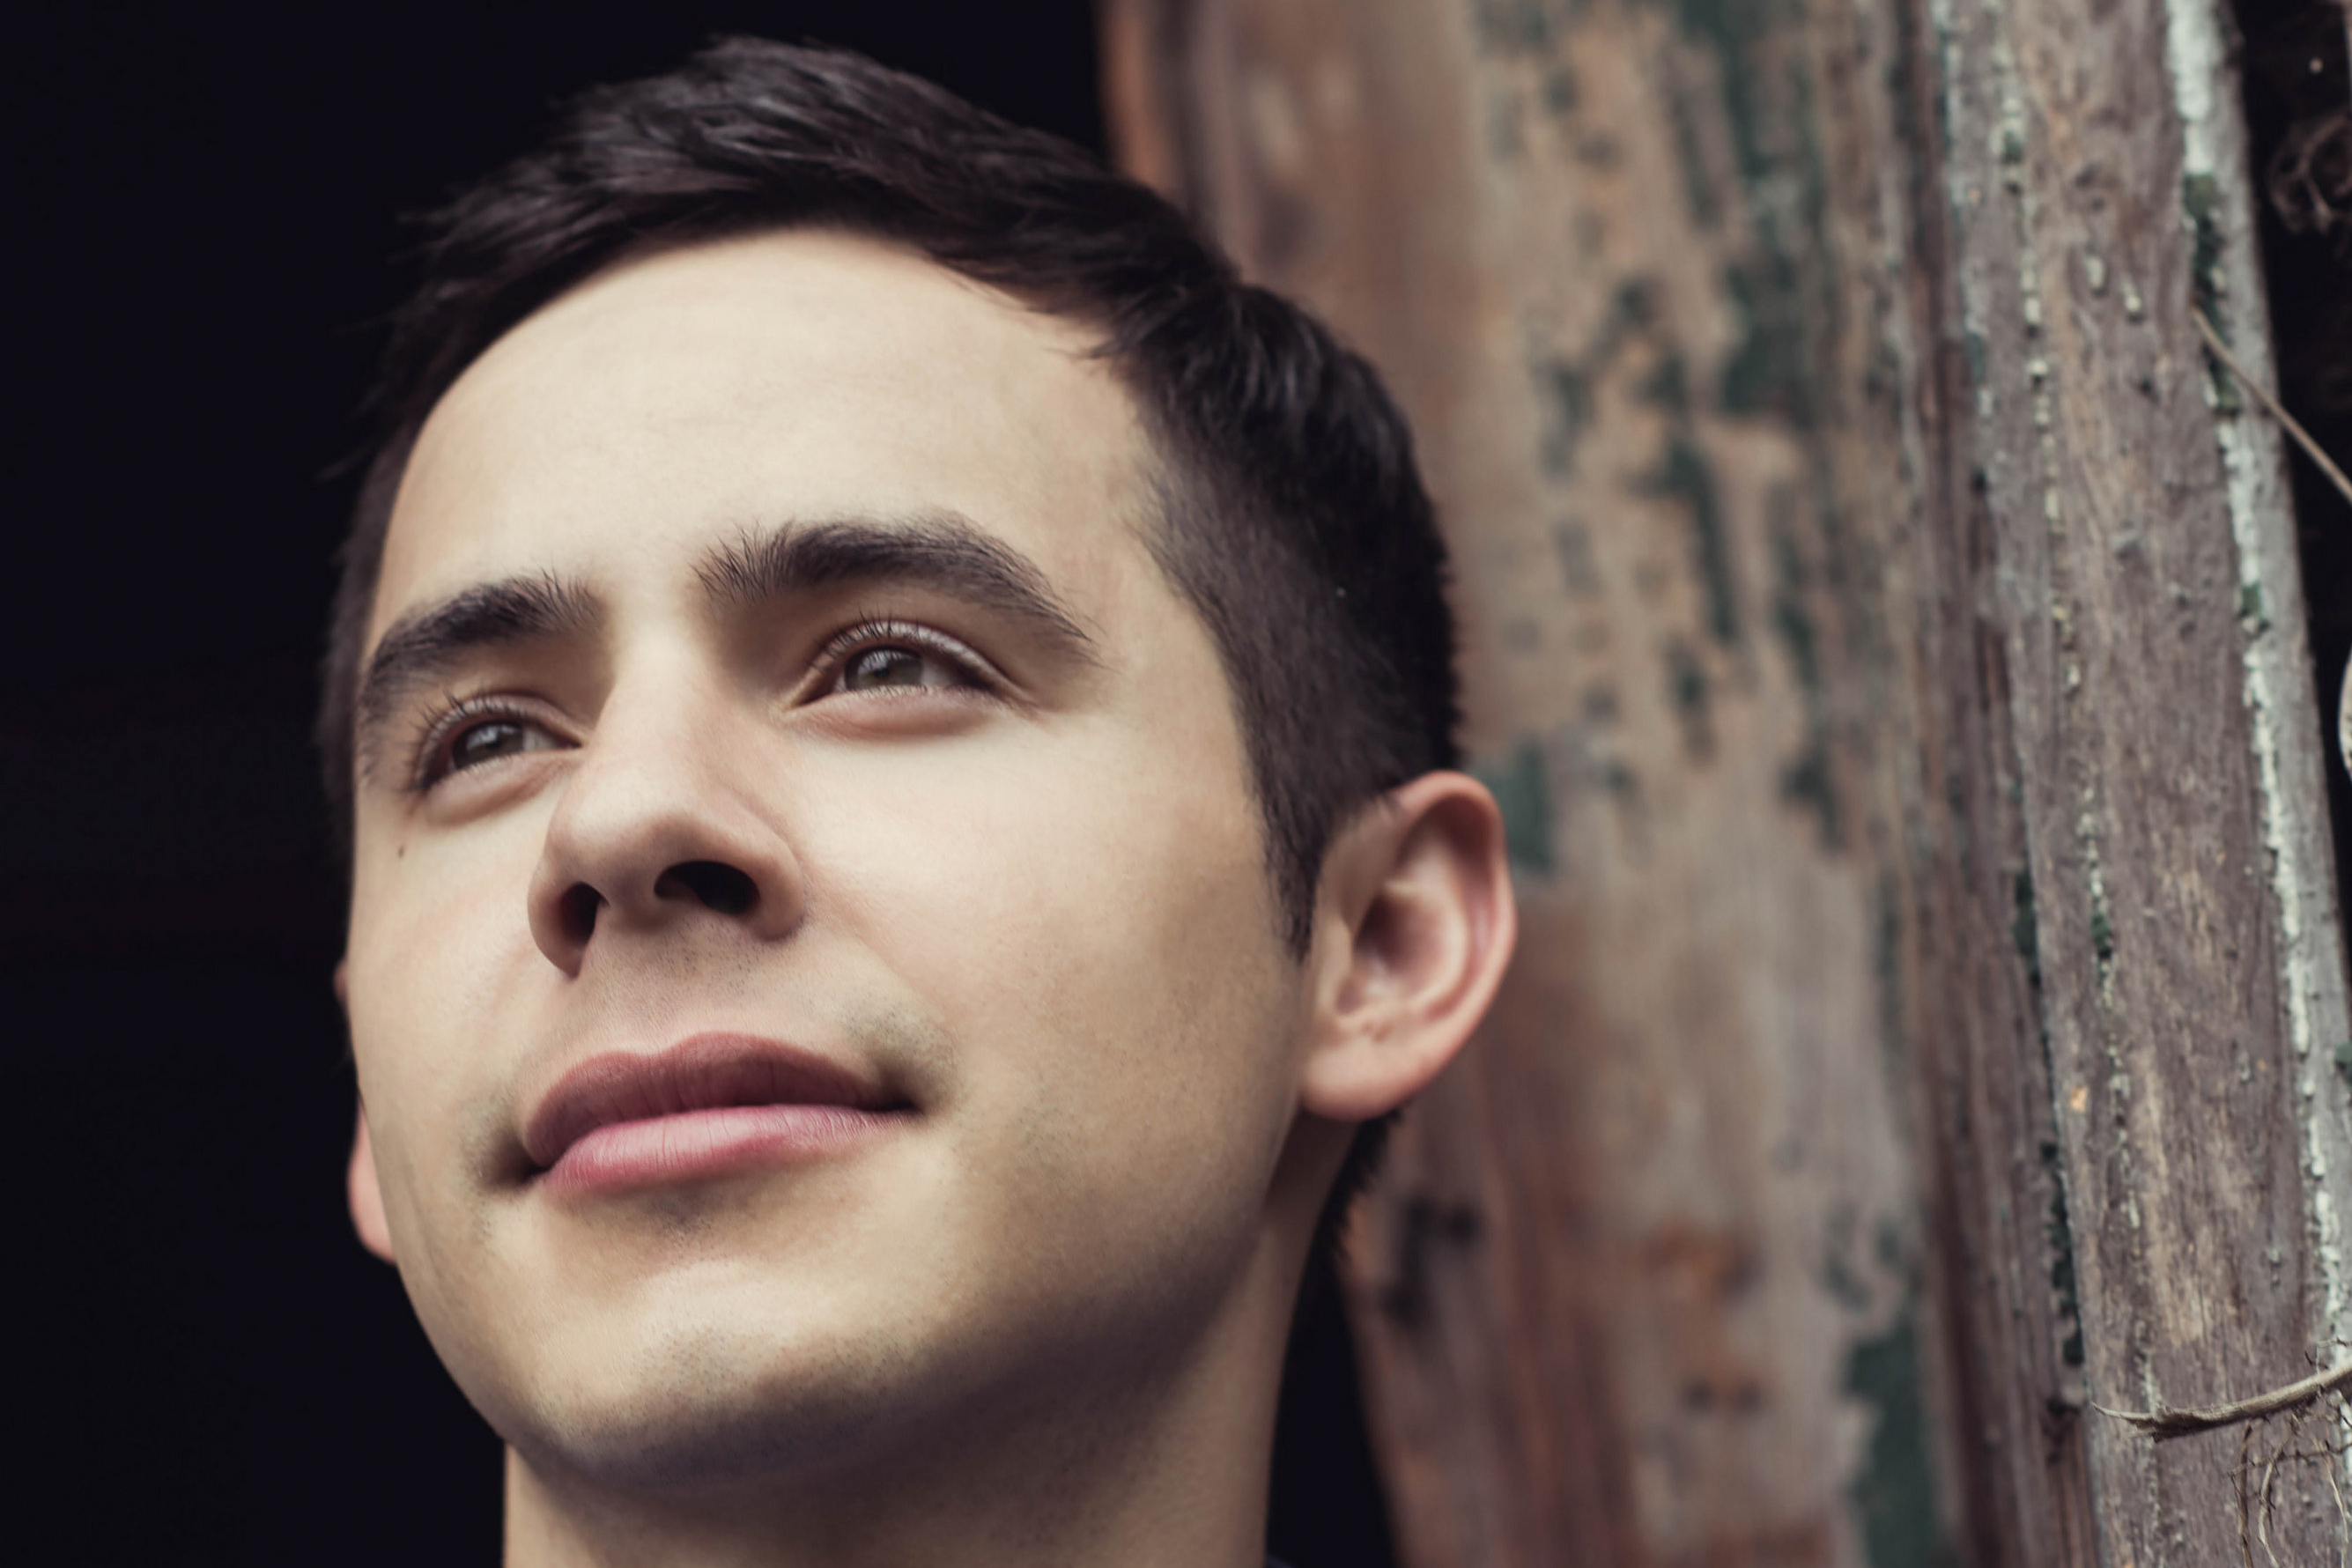 David Archuleta to perform two concerts at BYU-I